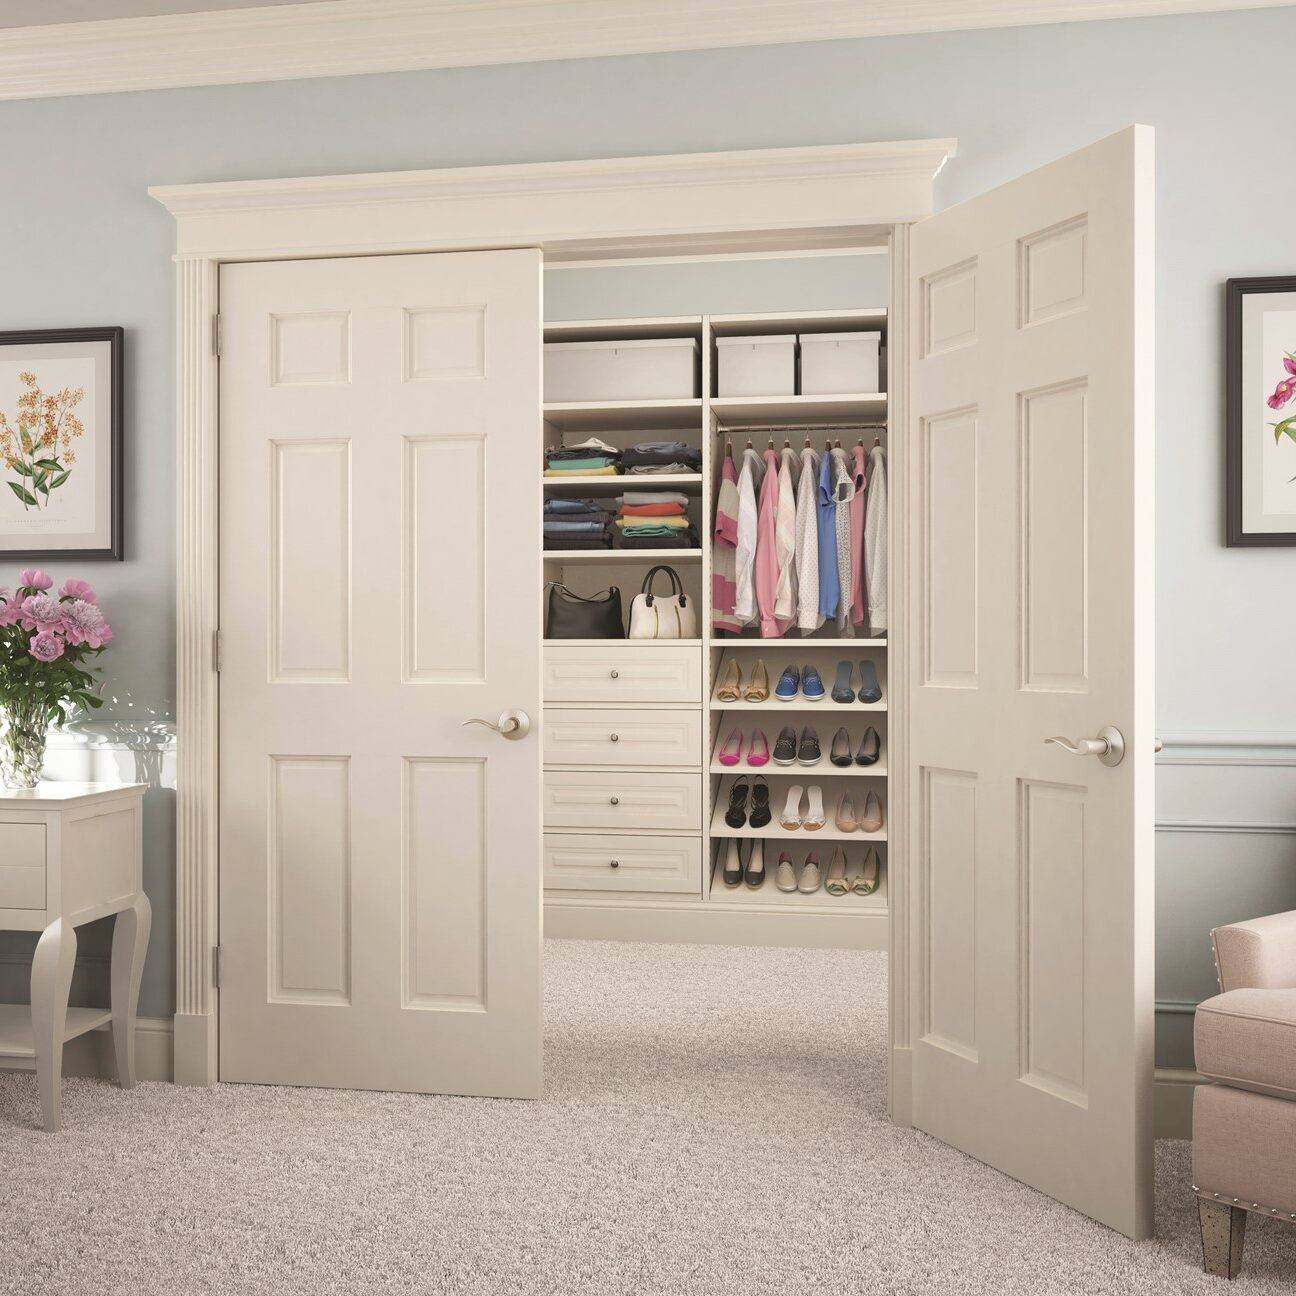 Van Millwork Door Photo Homepage